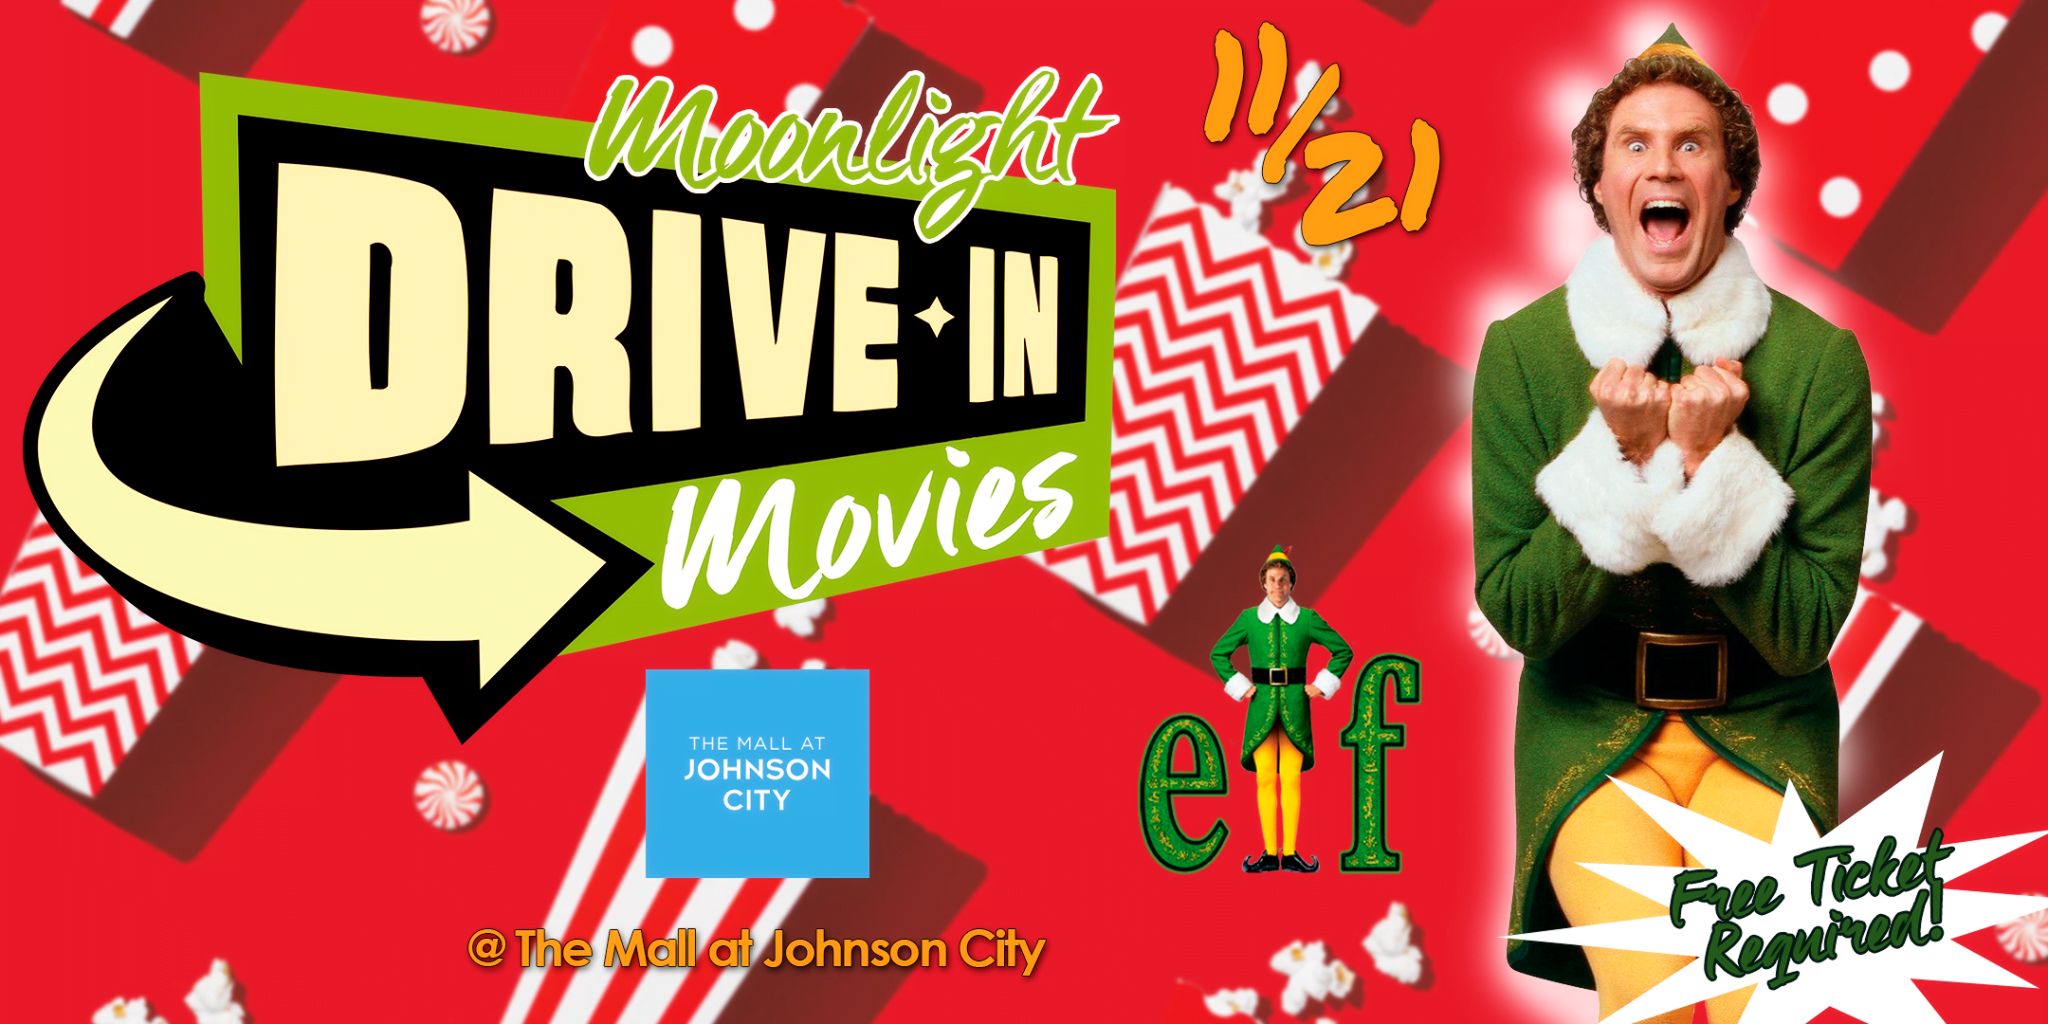 Moonlight Drive-In Movies at The Mall at Johnson City 1